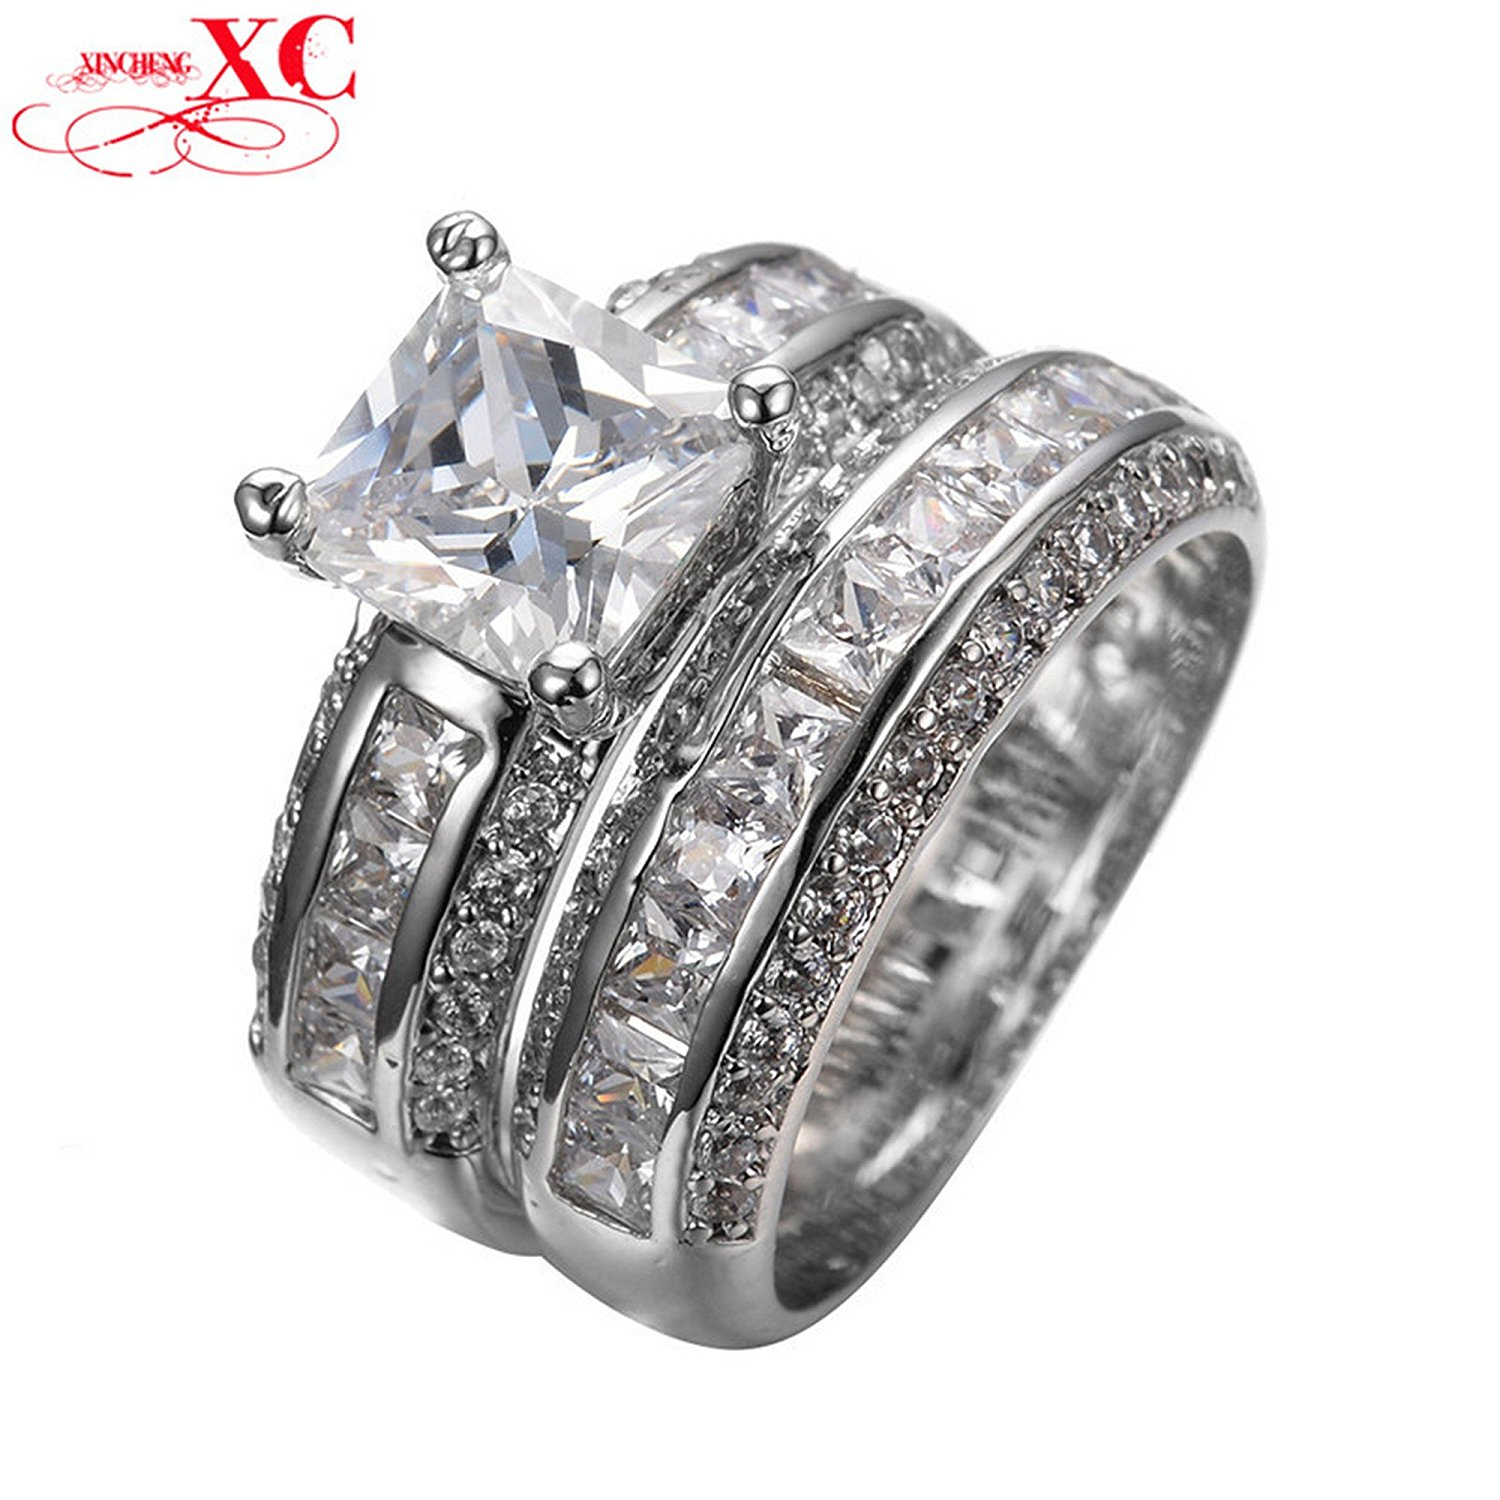 GDSHOP Vintage Princess Cut White Sapphire Jewelry Women Wedding Ring Sets Anel White Gold Filled Engagement Bridal Rings Sz6-10